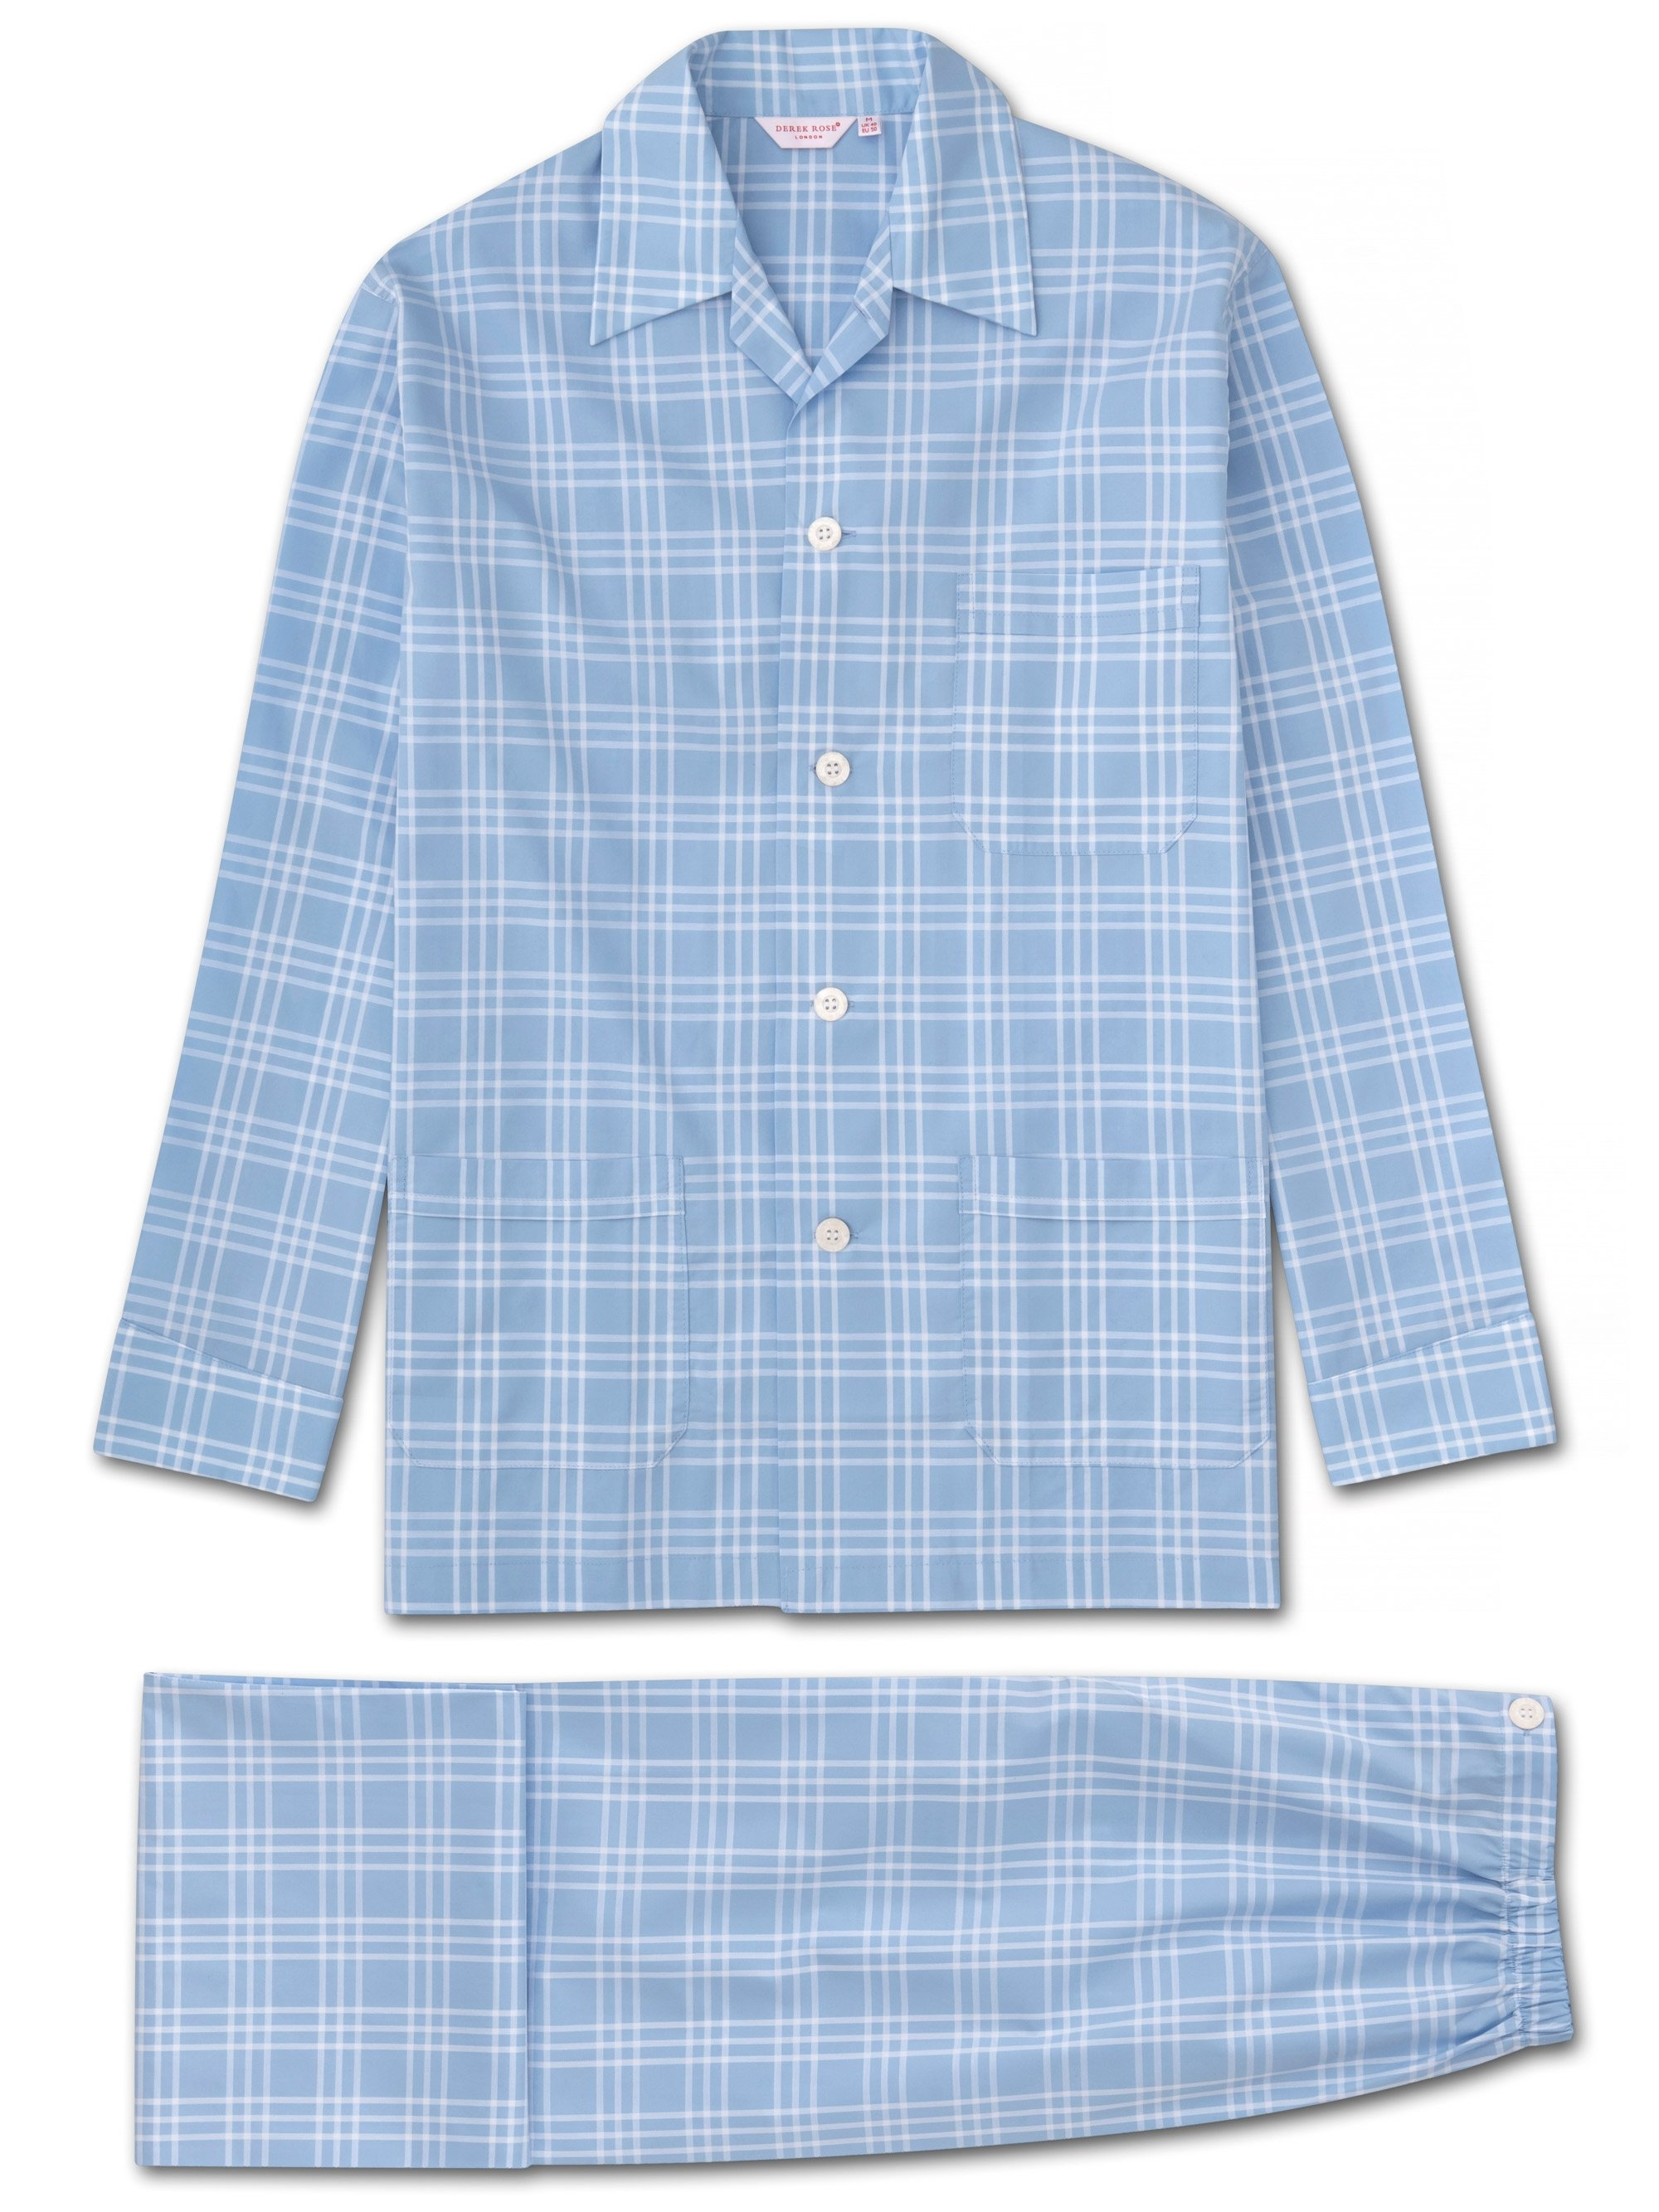 Men's Classic Fit Pyjamas Barker 27 Cotton Check Blue